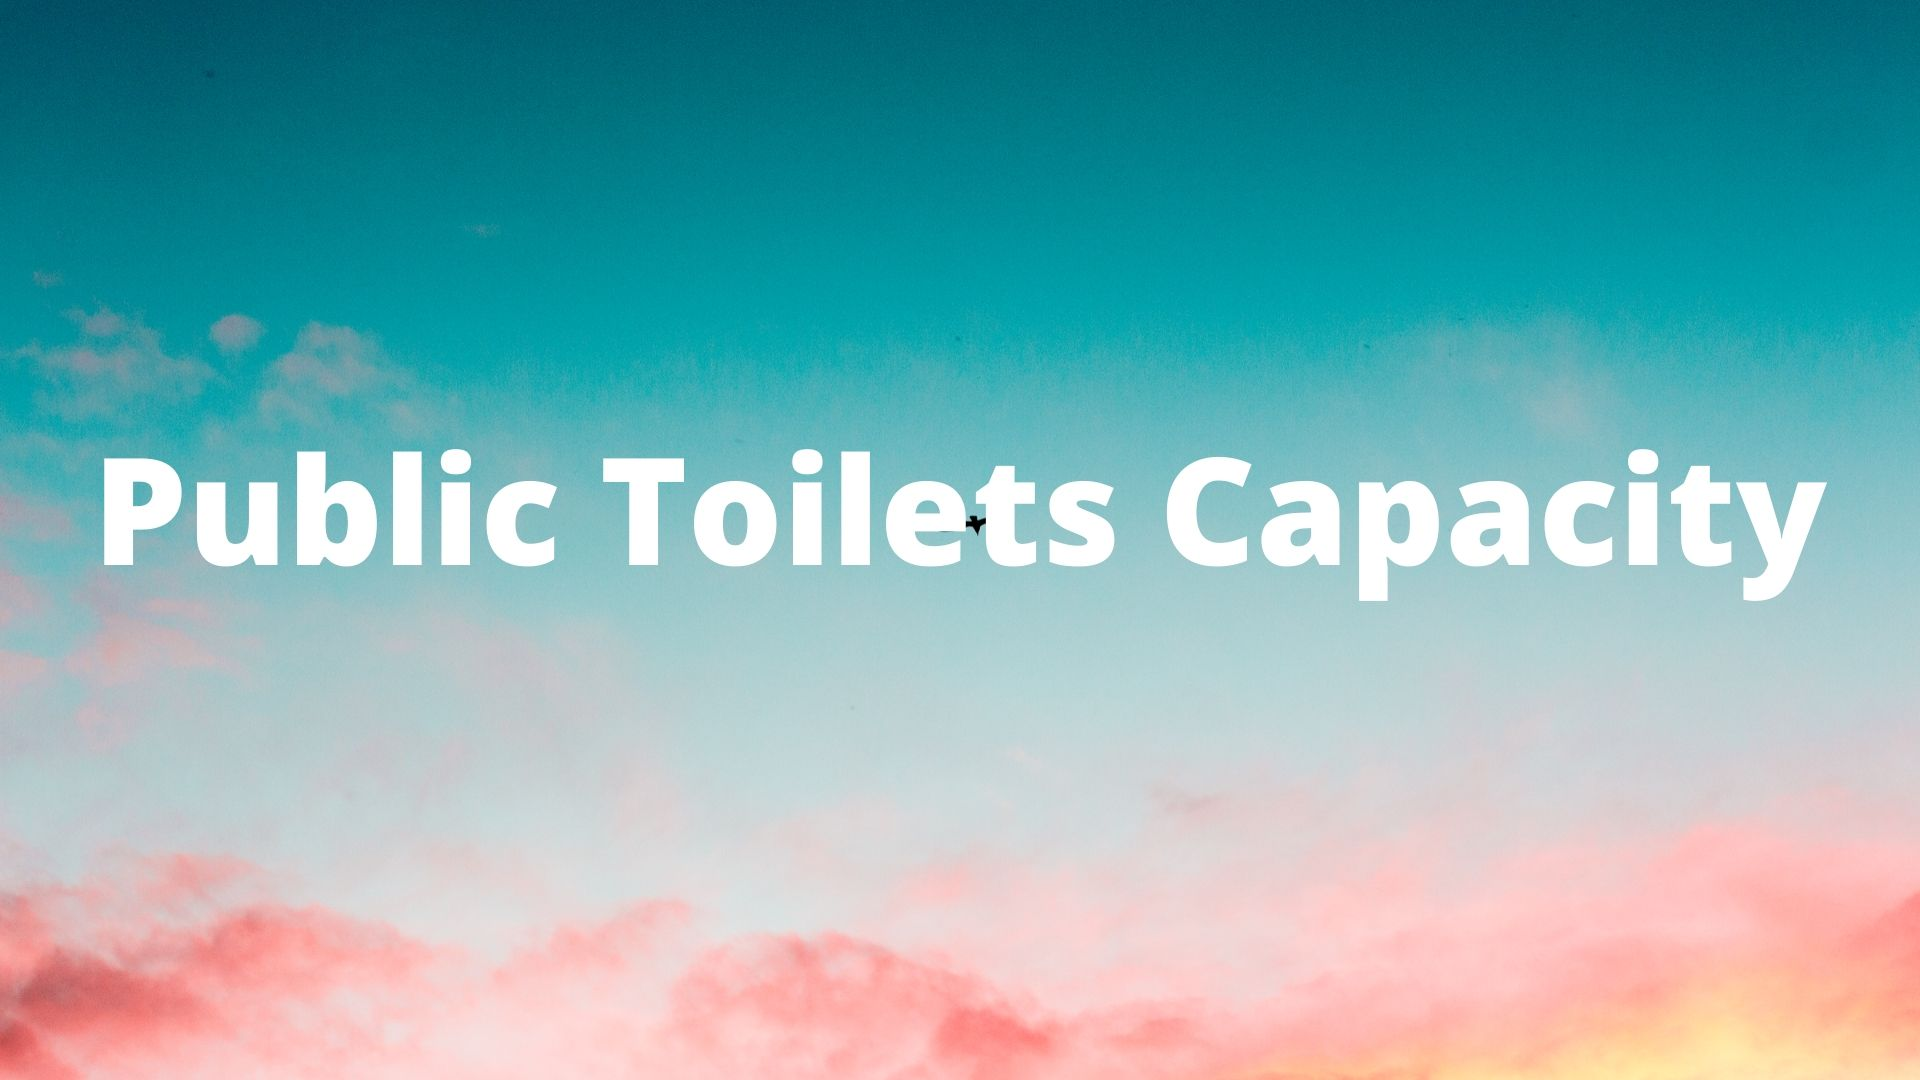 Reduced public toilet capacity